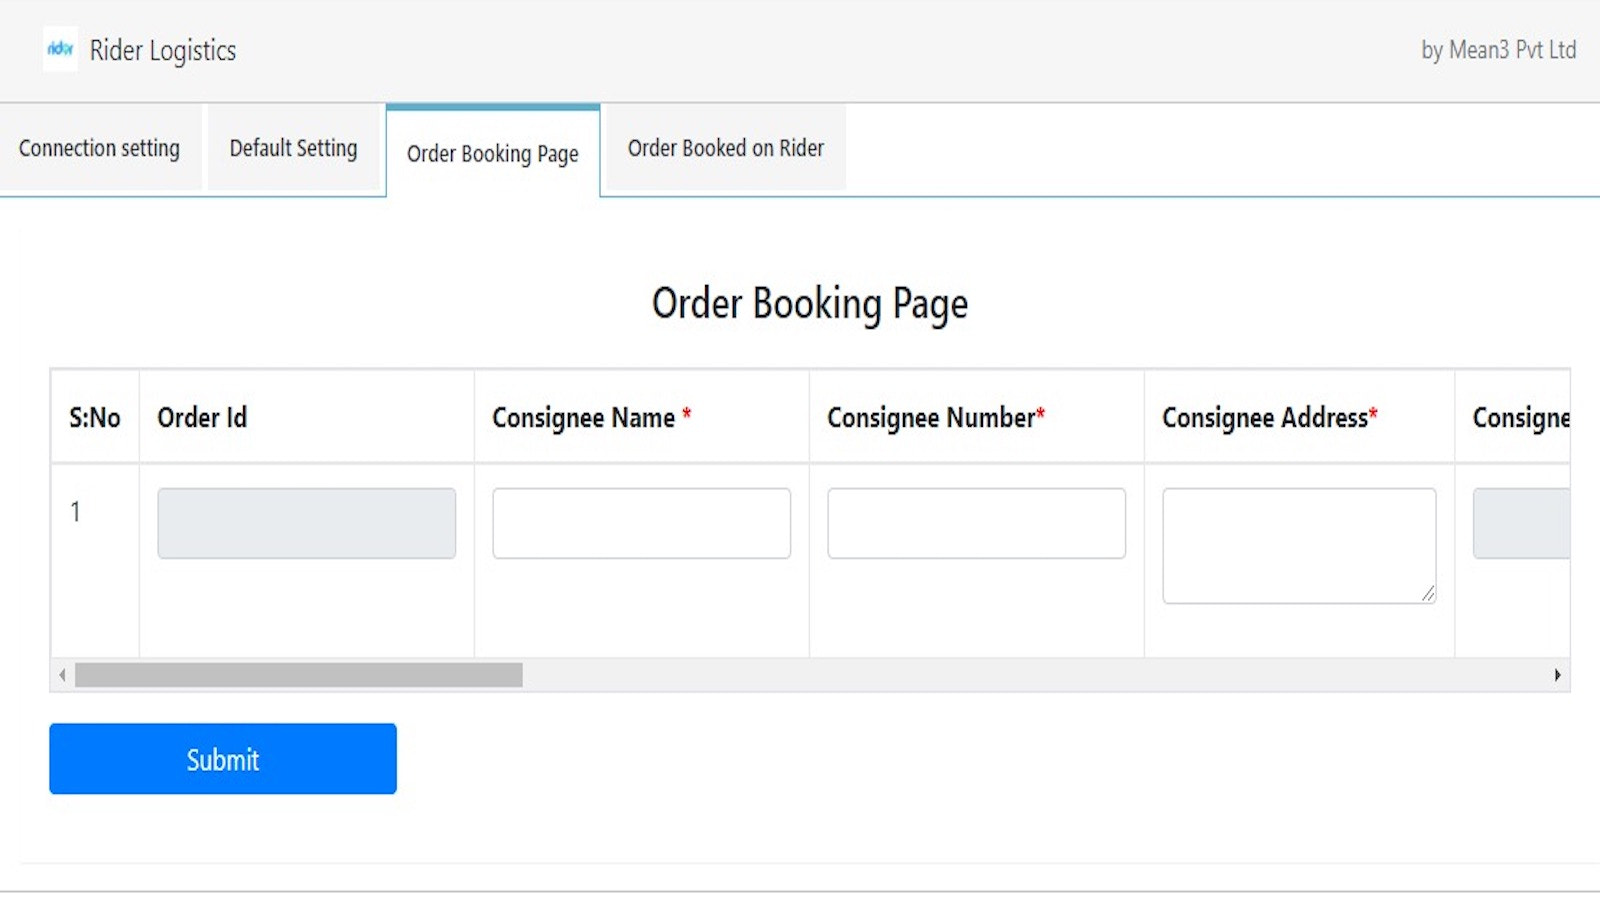 Order Booking Page